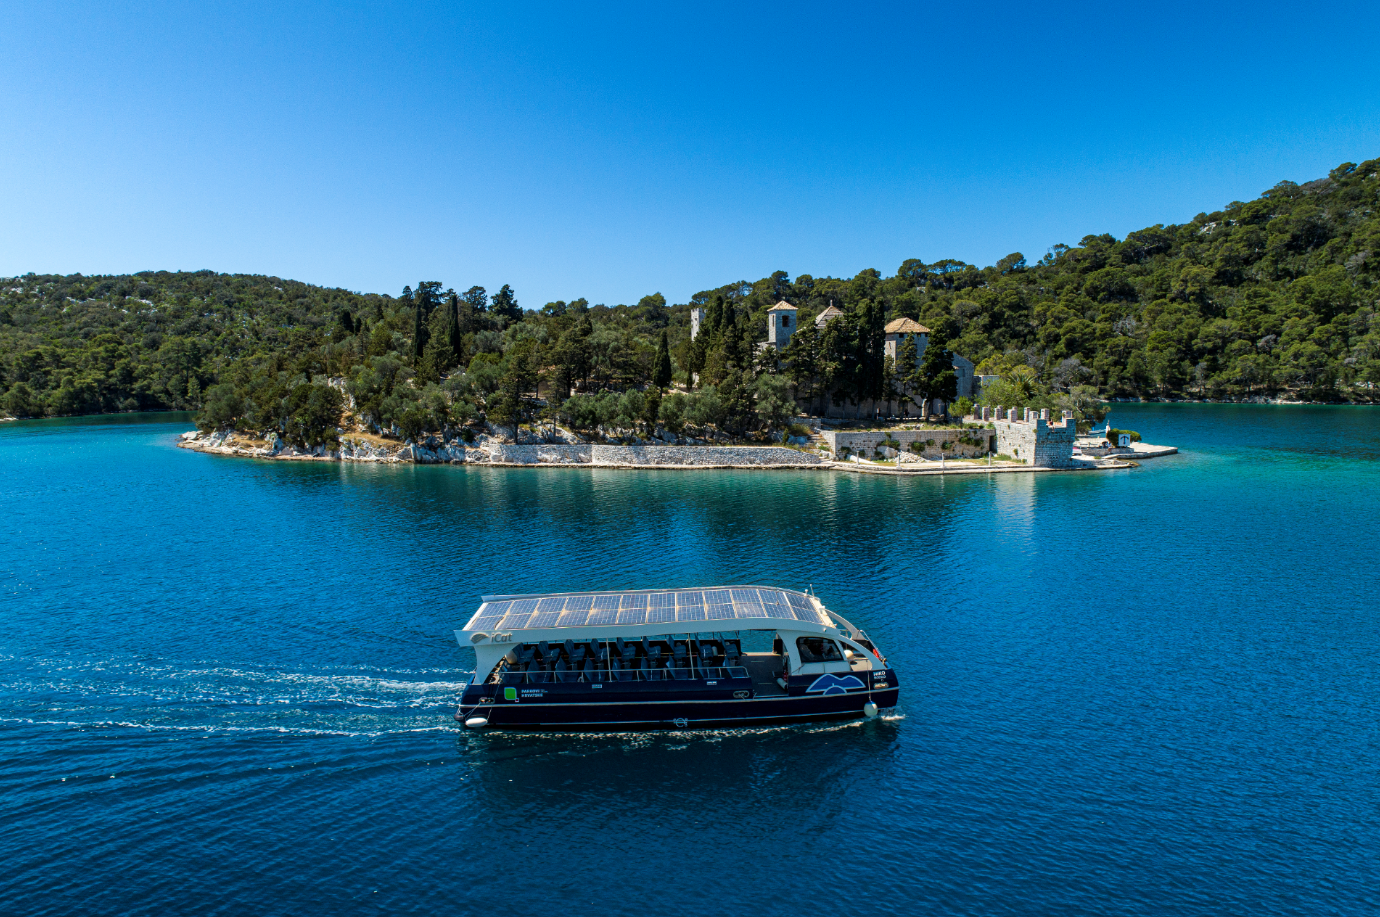 New boat schedule and working hours from June 14th